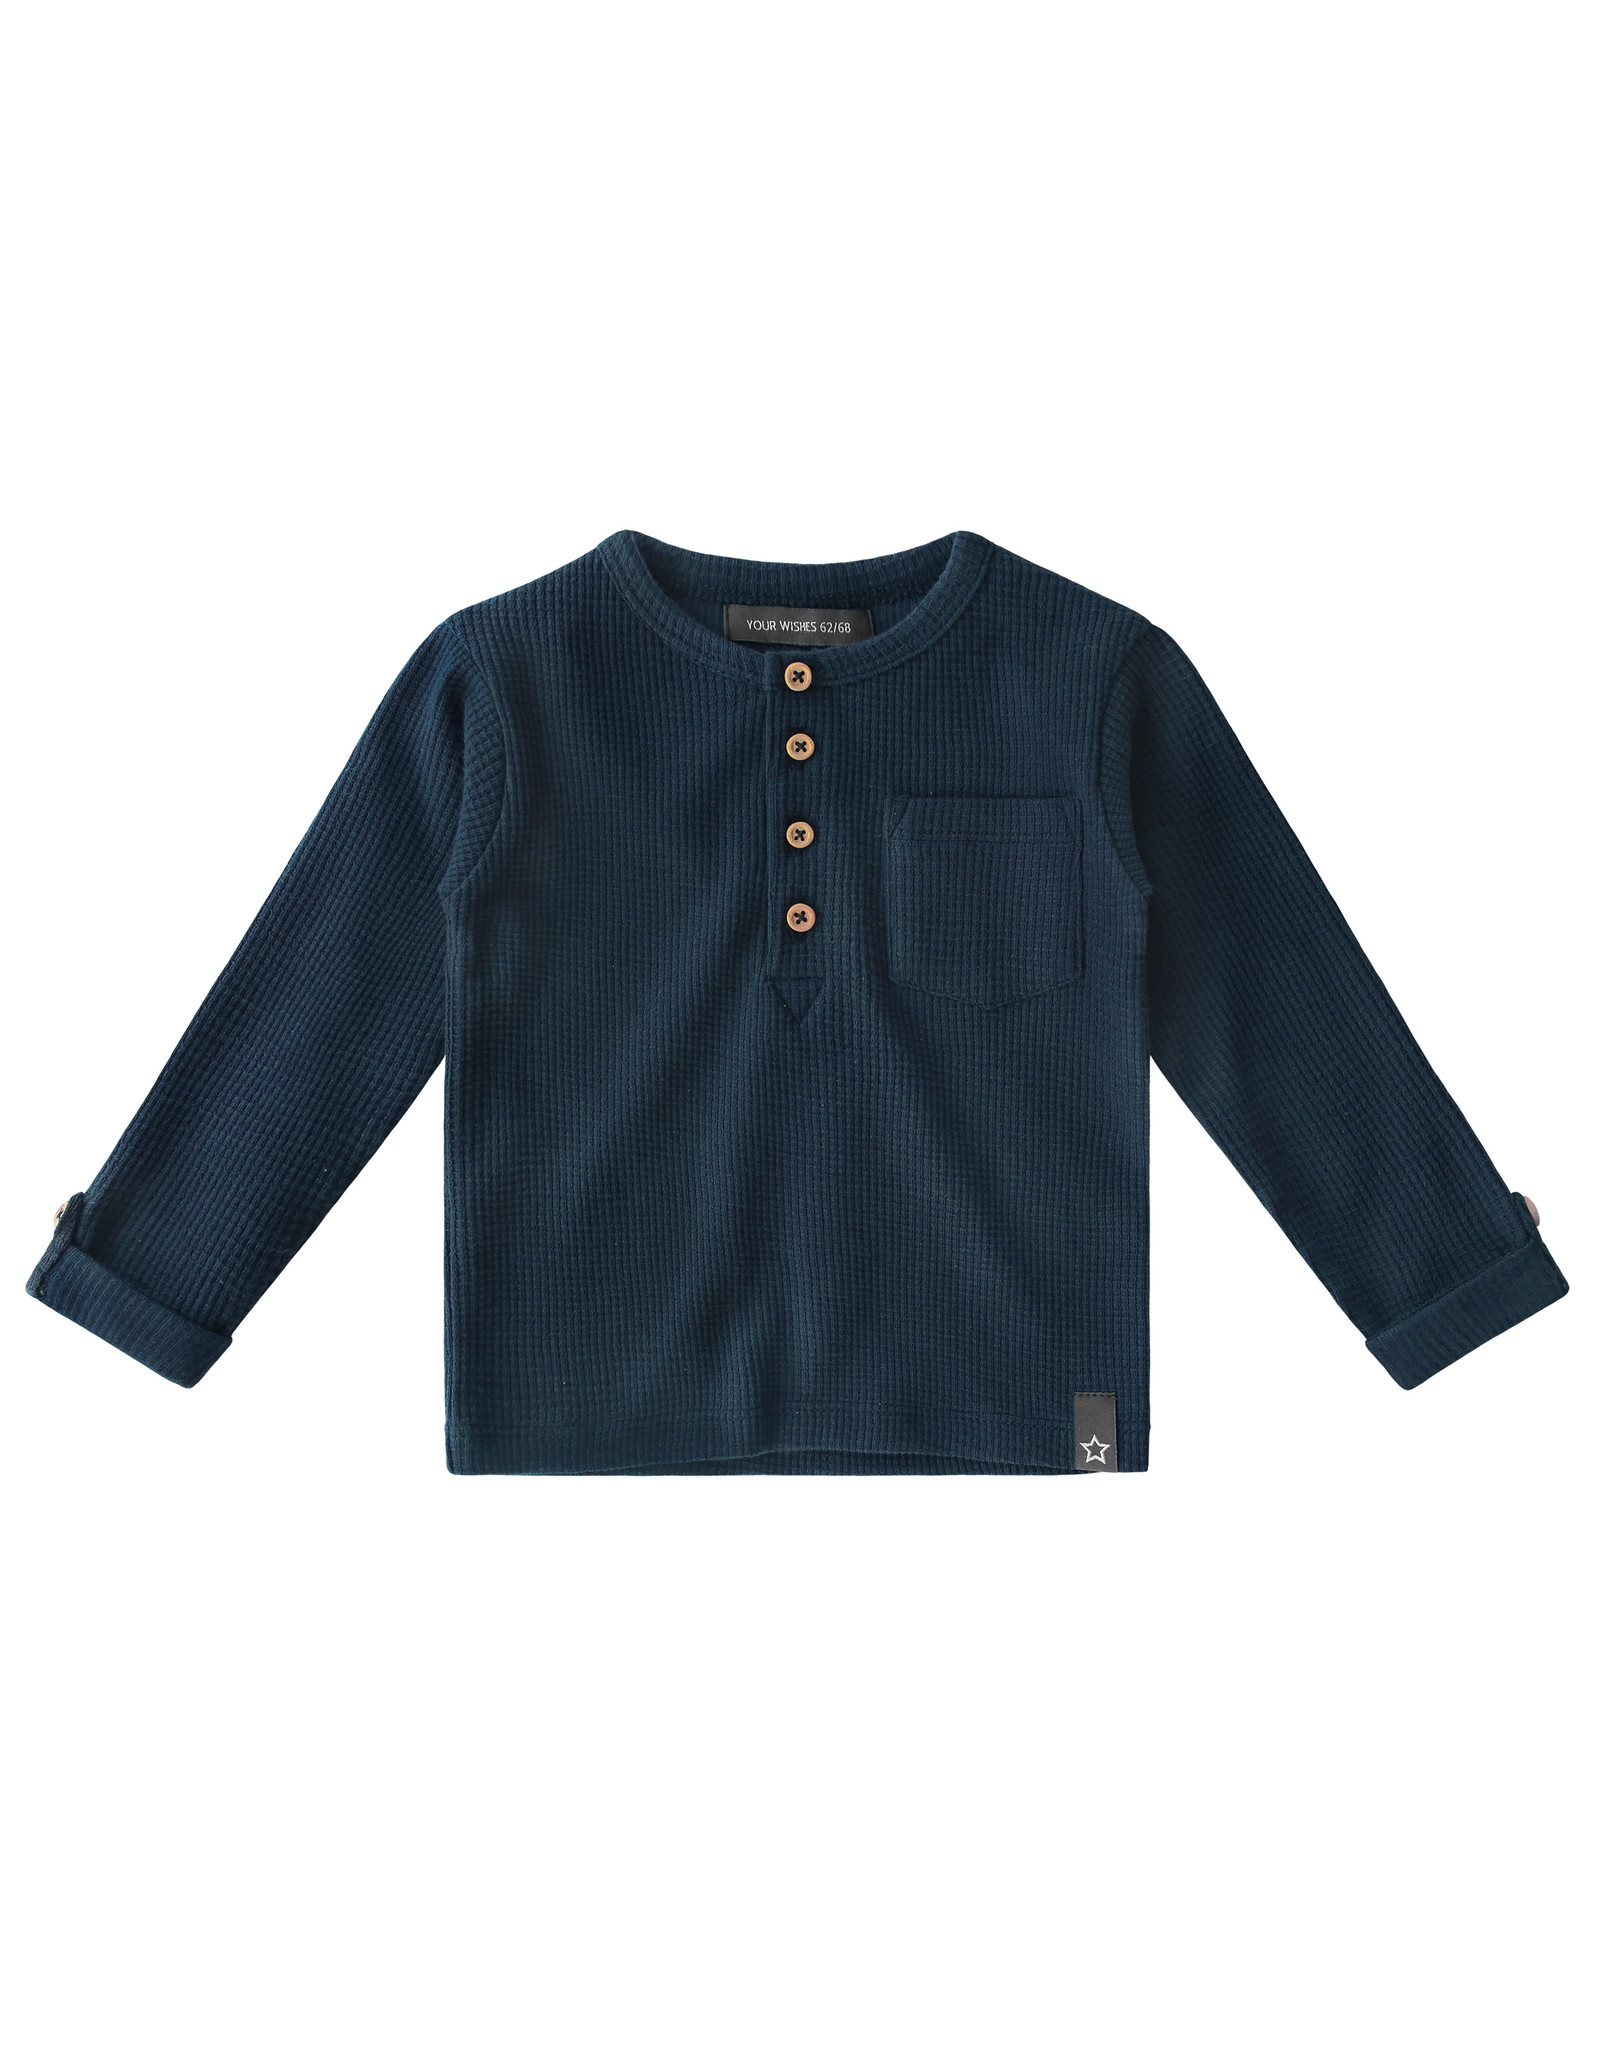 Your Wishes YW | Navy - Waffle | Grandpa Longsleeve